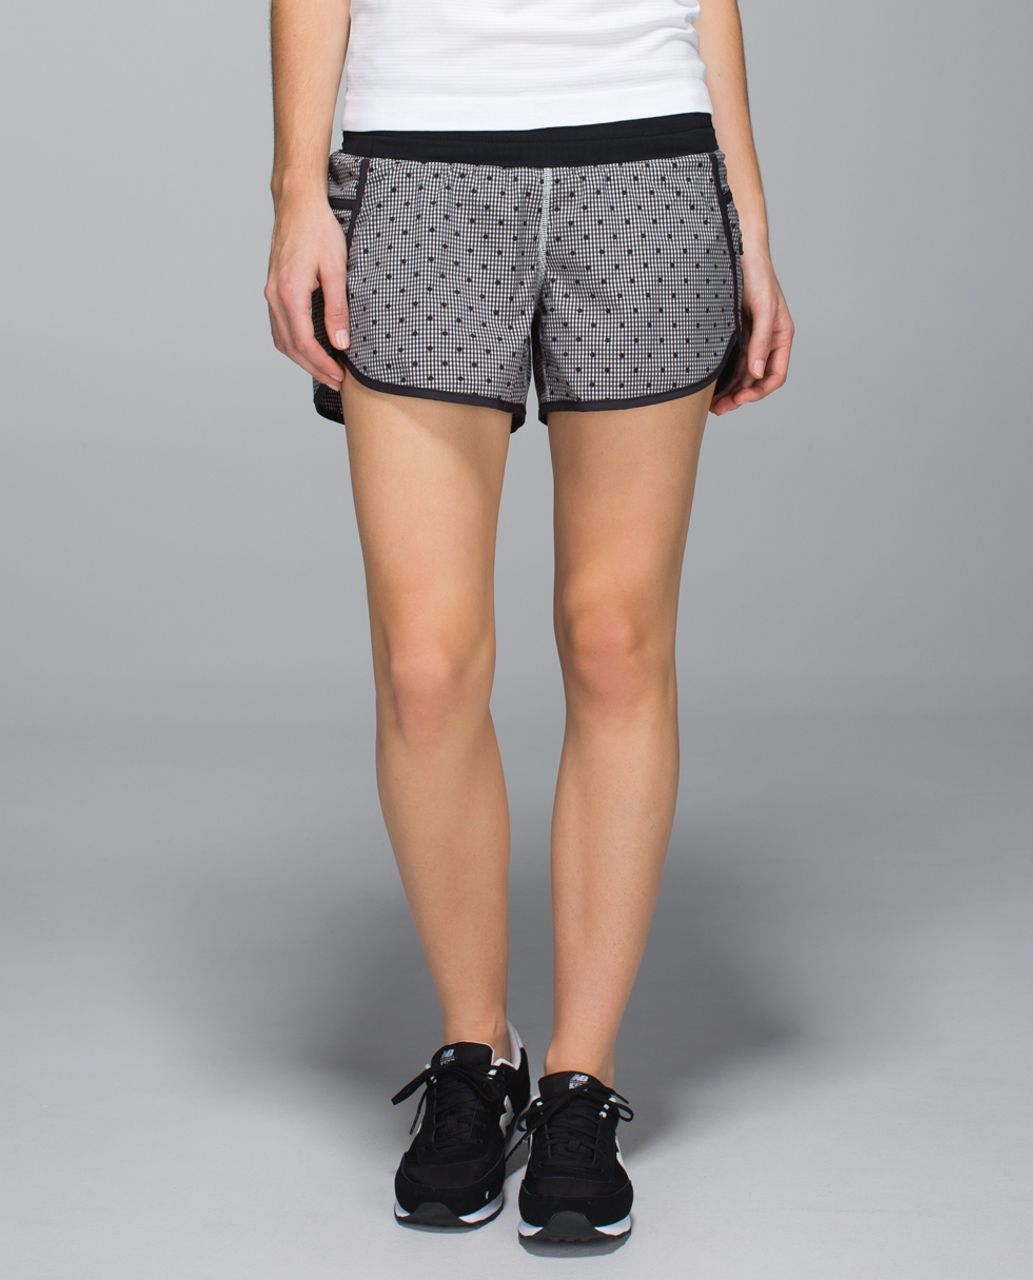 Lululemon Tracker Short II *2-way Stretch - Dottie Eighth Gingham White Black / Black